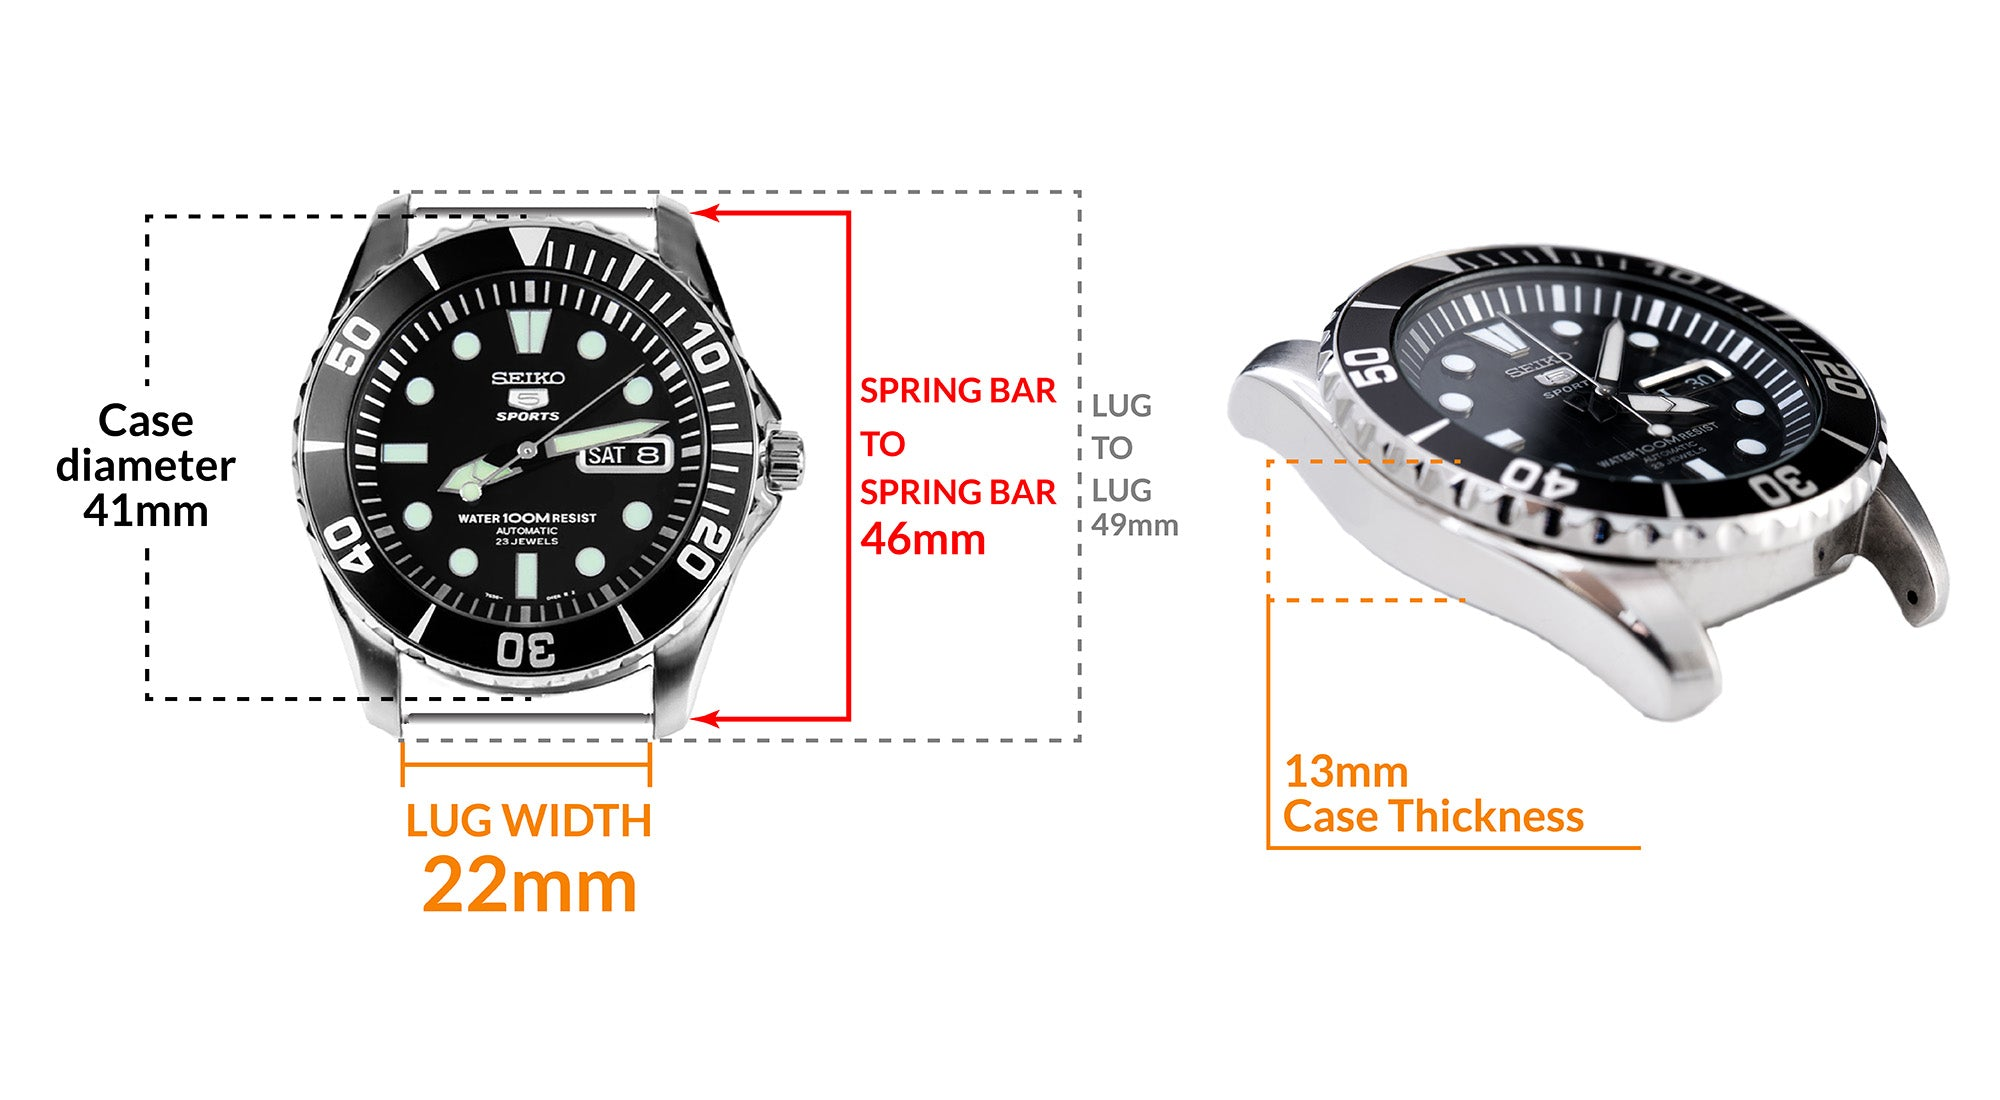 Seiko SNZF17 Sea Urchin Automatic Watch - Details watch case measurement and dimensions